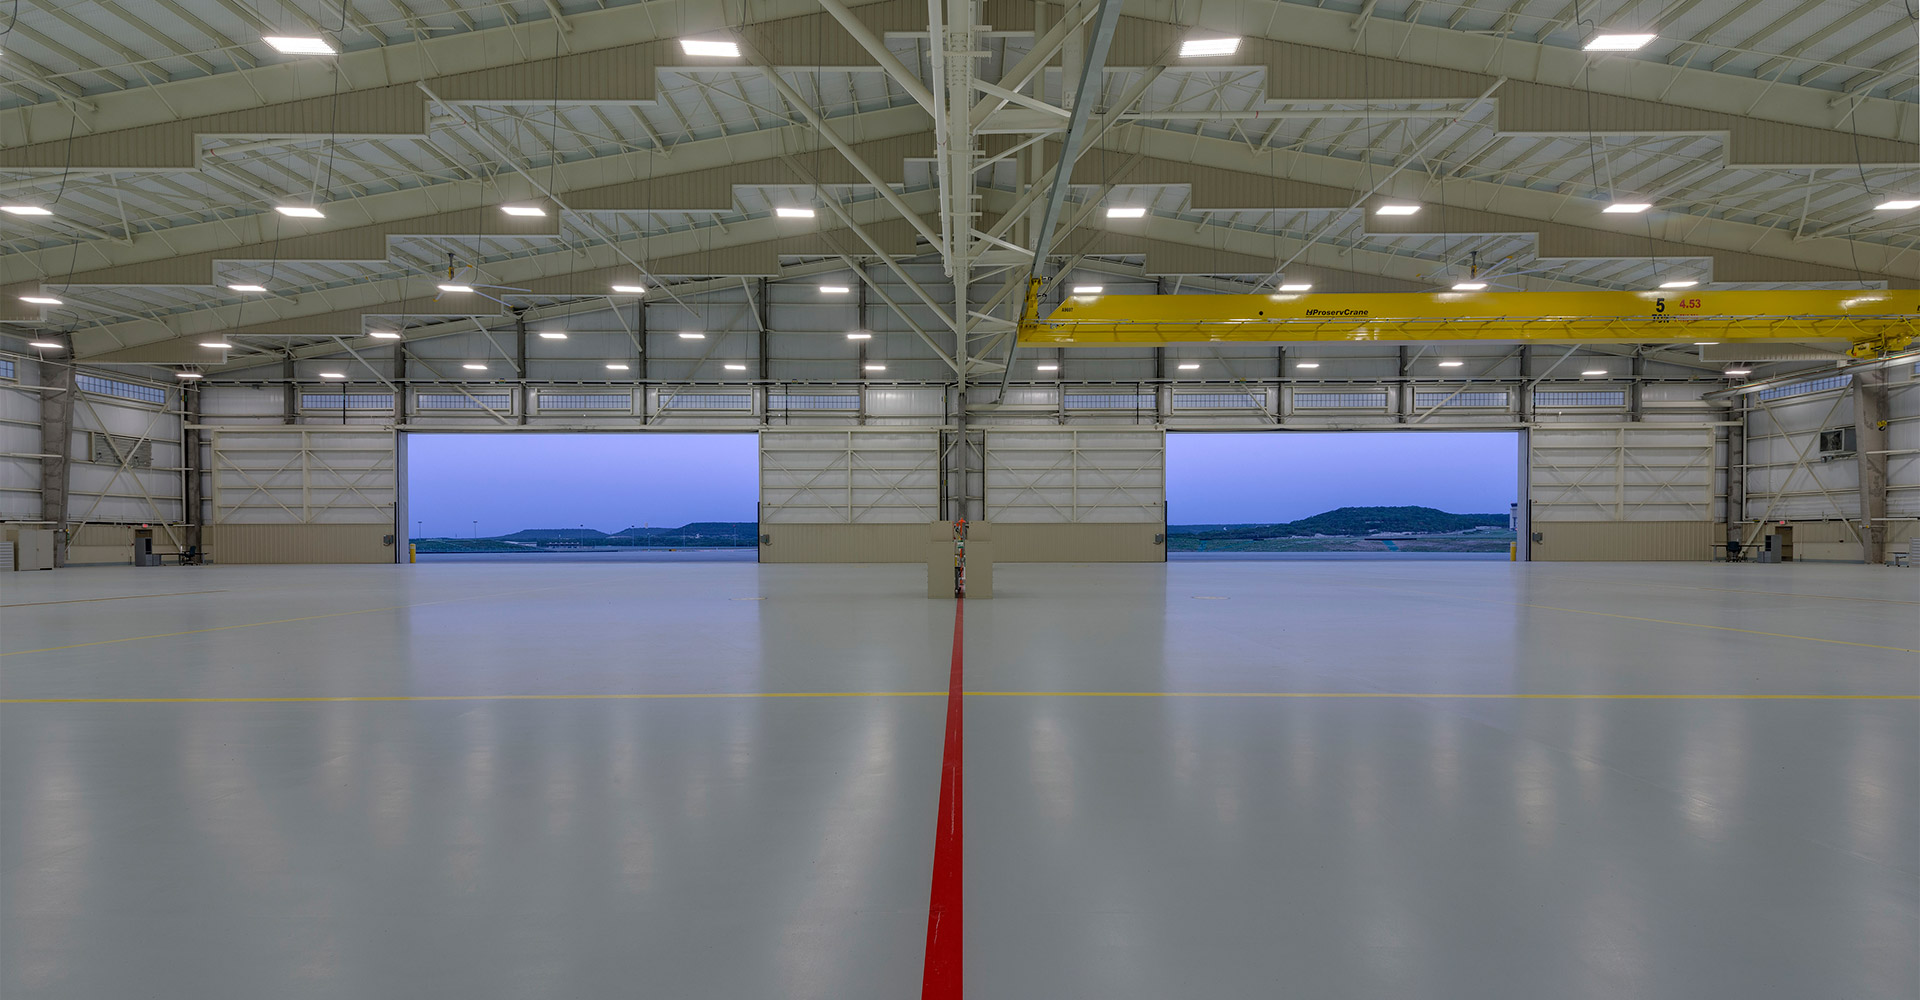 Unmanned aircraft hanger interior.